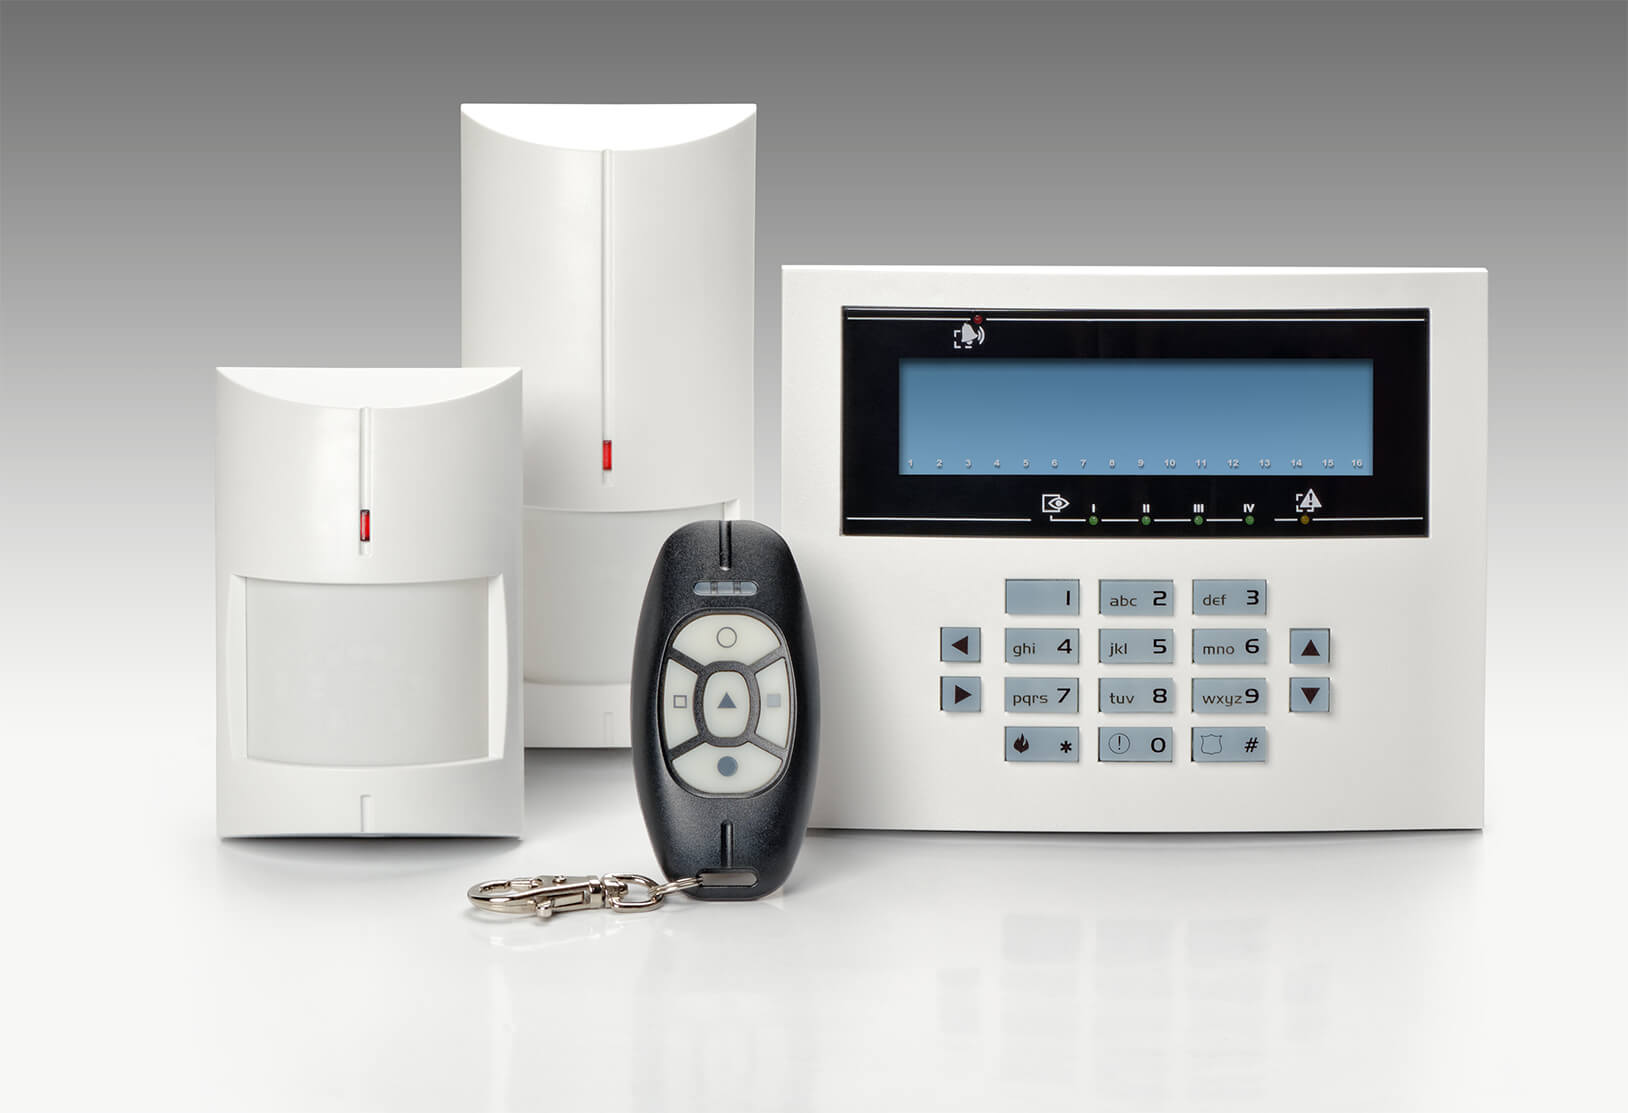 Security requires as high level as possible to make you tranquil. And tranquillity and safety are today some of the top value we tend to gain. As an experienced providers of security, access control and alarm systems and services, KEWEGO Ltd. has managed to become one of the local leaders in the sphere of safety […]